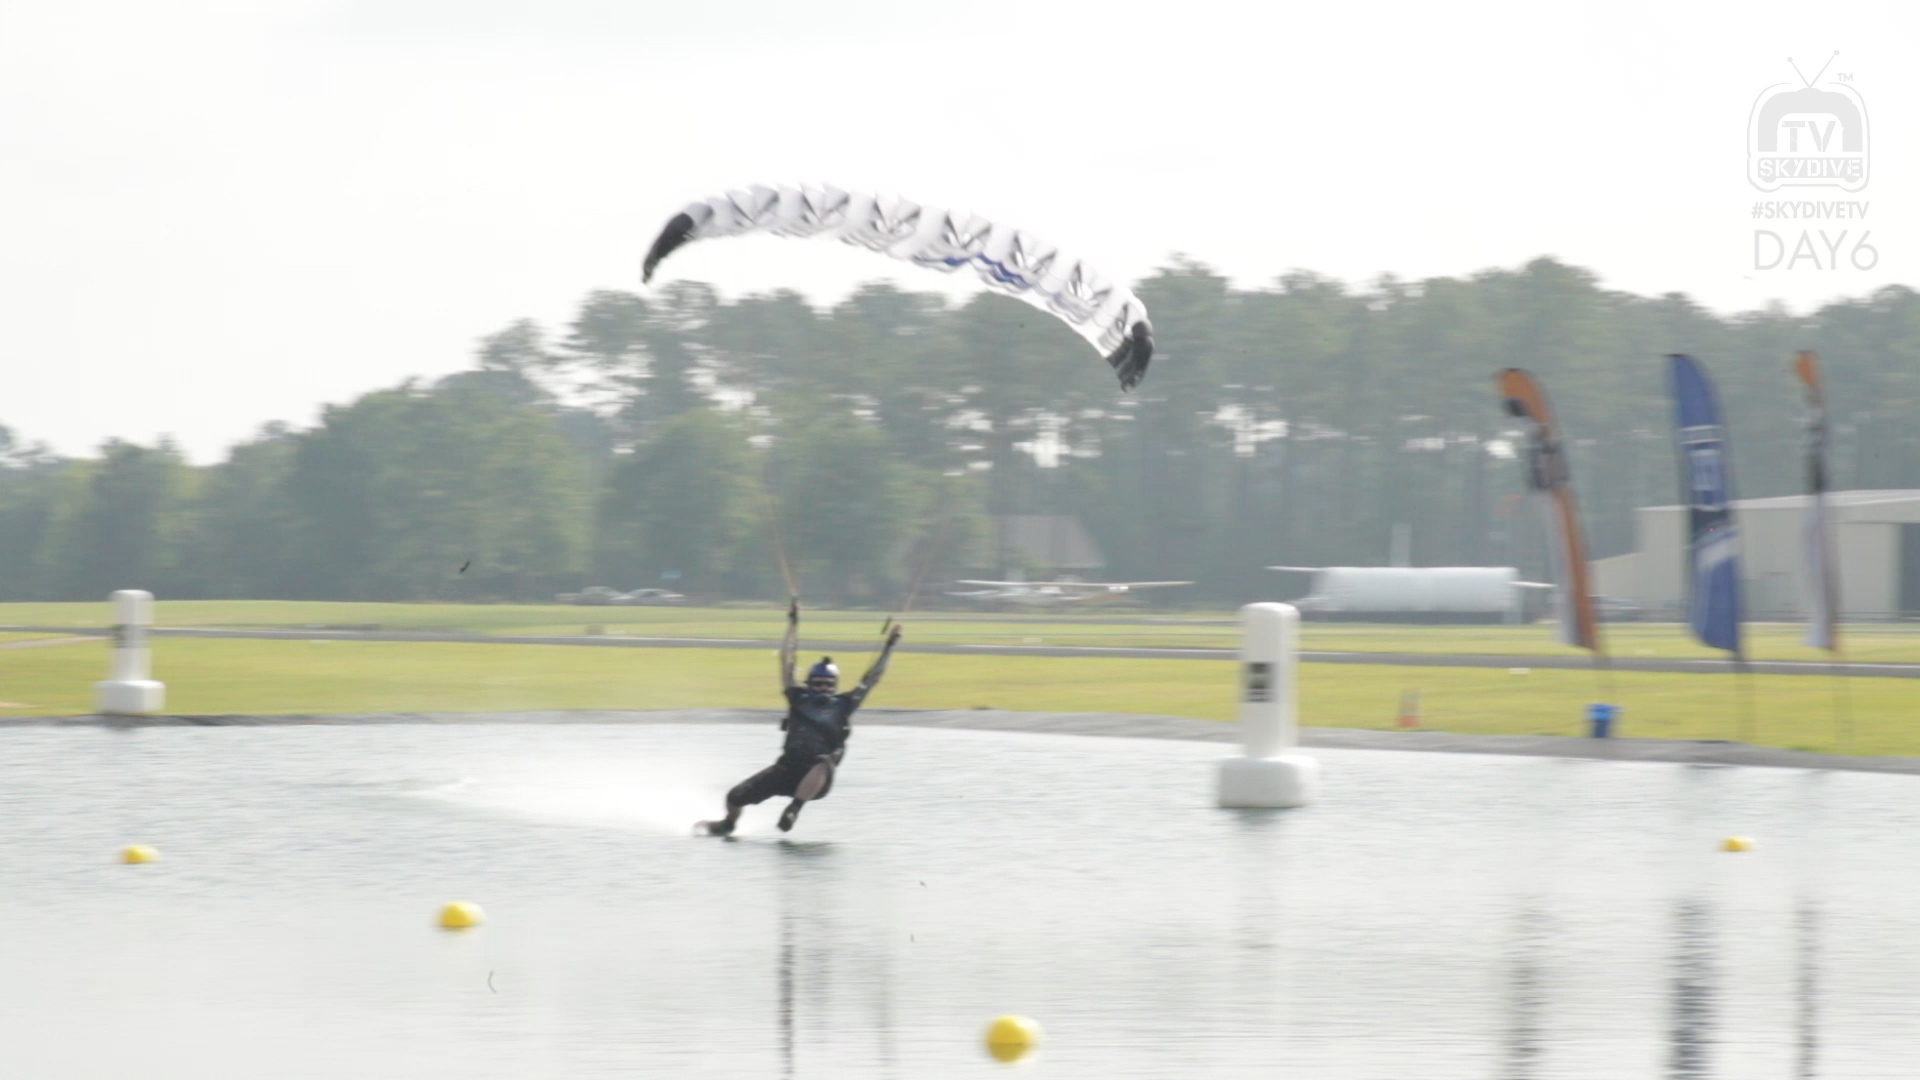 DAY6-CANOPY PILOTING